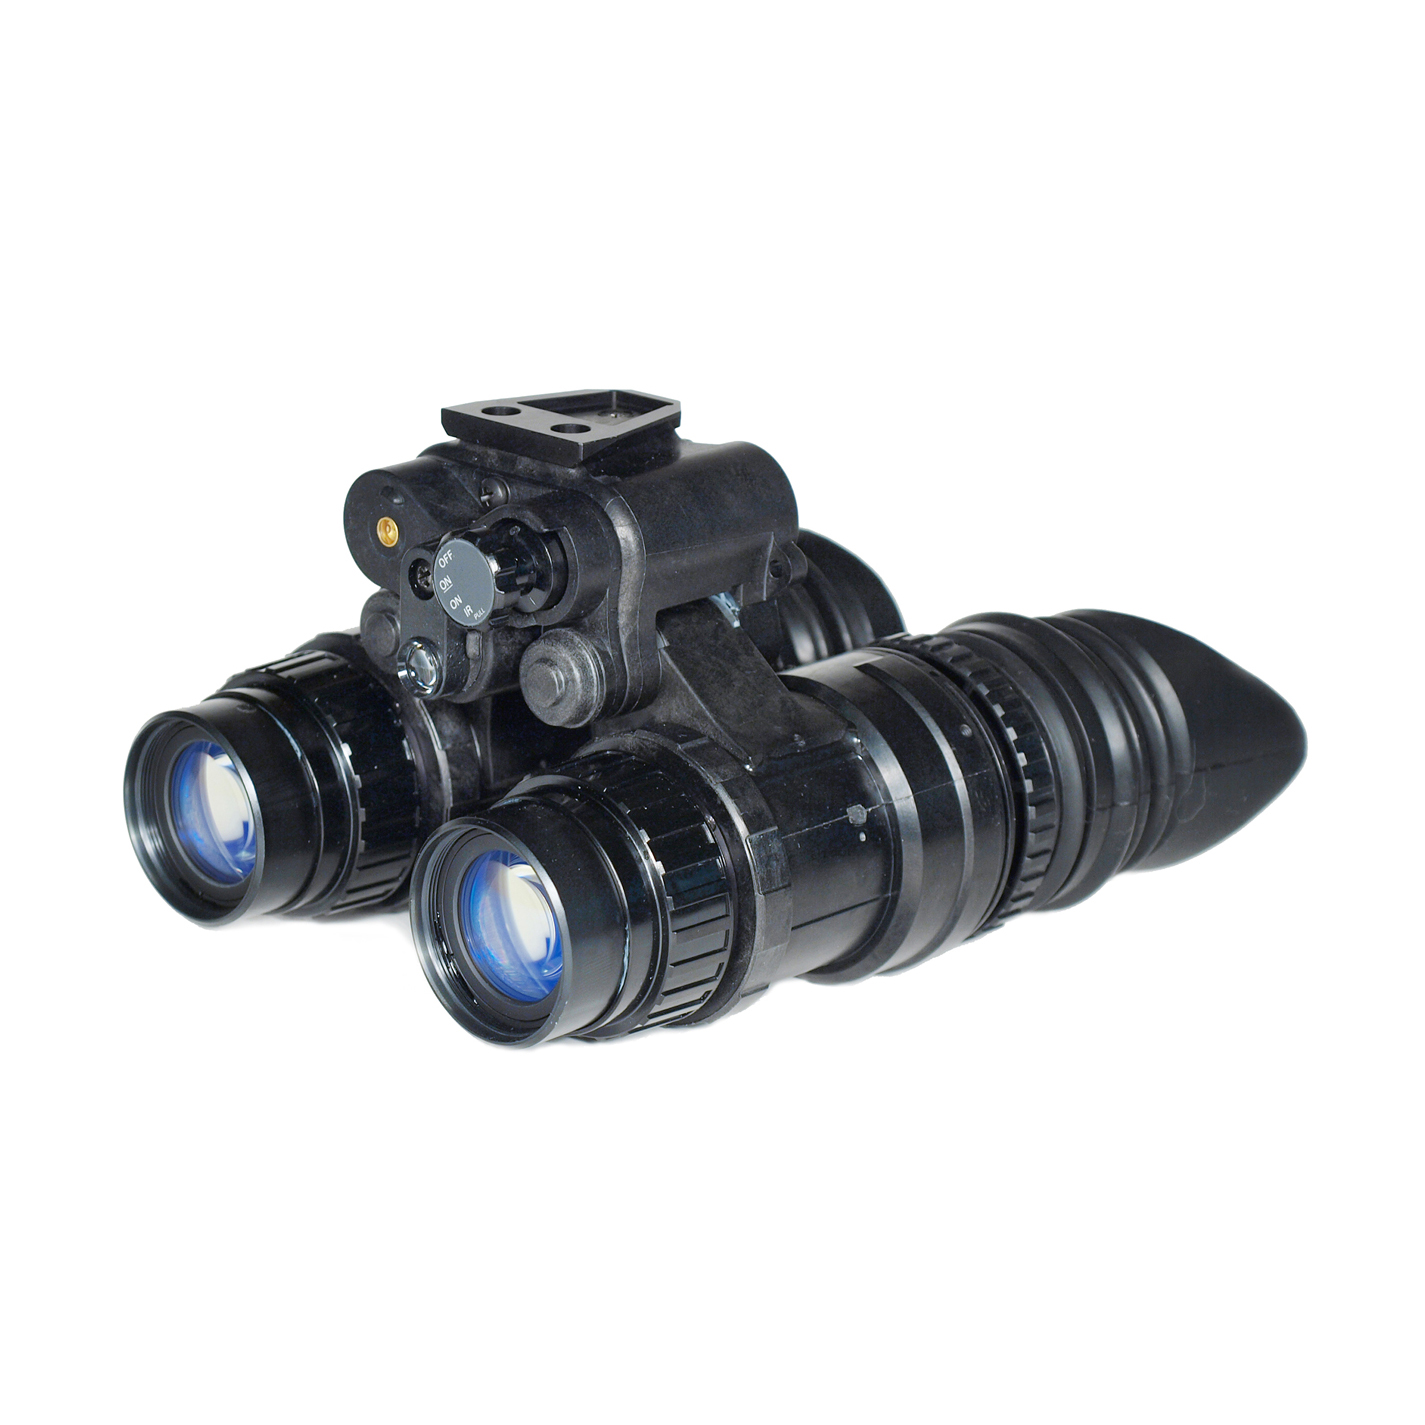 AN/PVS-15 MIL Spec Night Vision Binocular